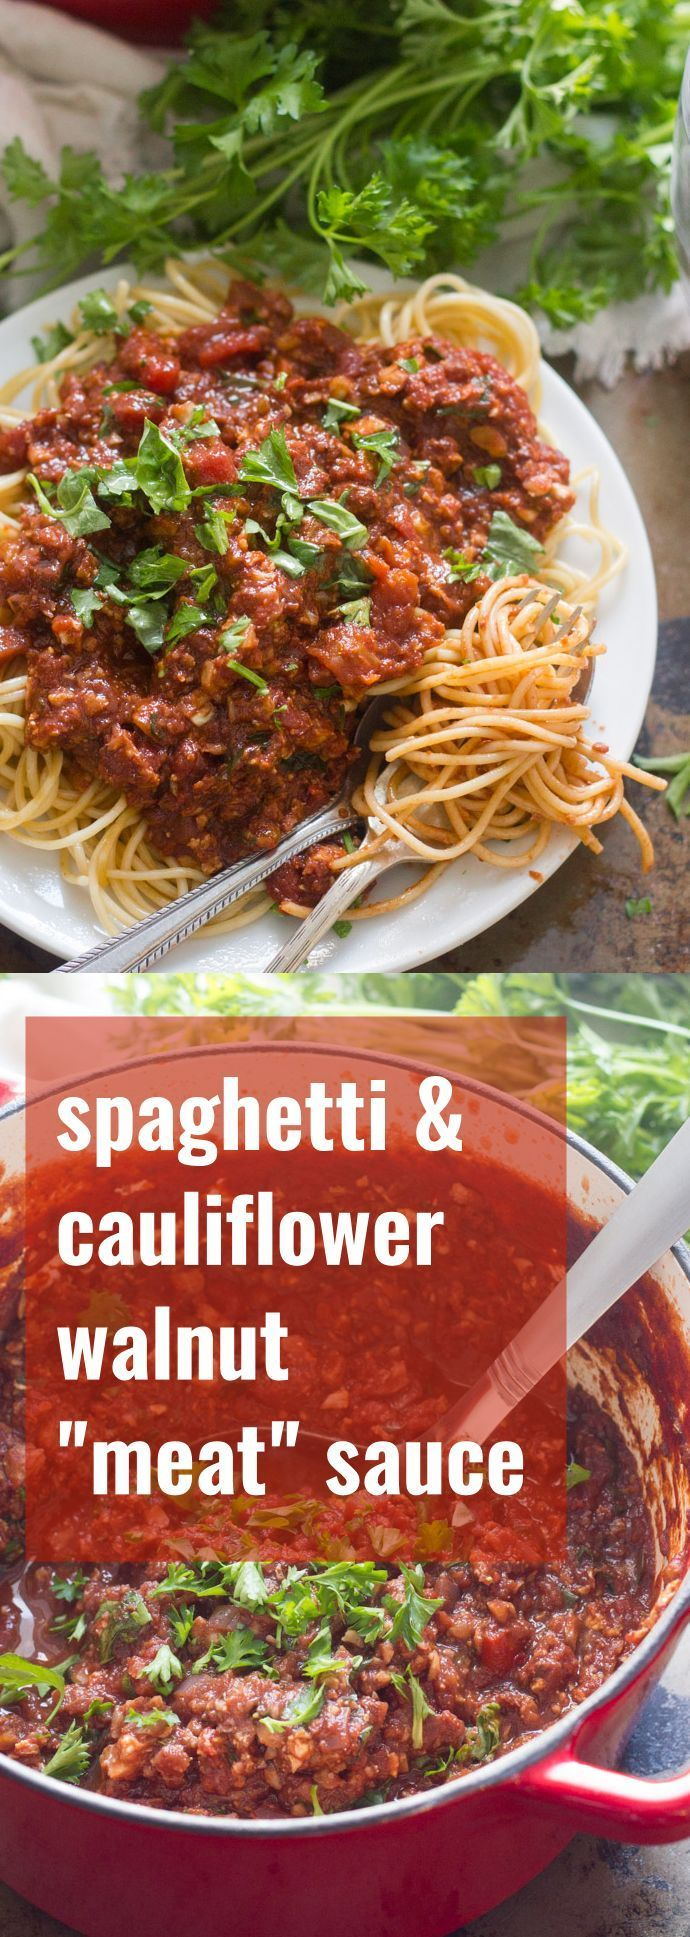 Cauliflower and walnut crumbles are seasoned, baked and smothered in zesty tomato sauce to make this veganized version of spaghetti with meat sauce.